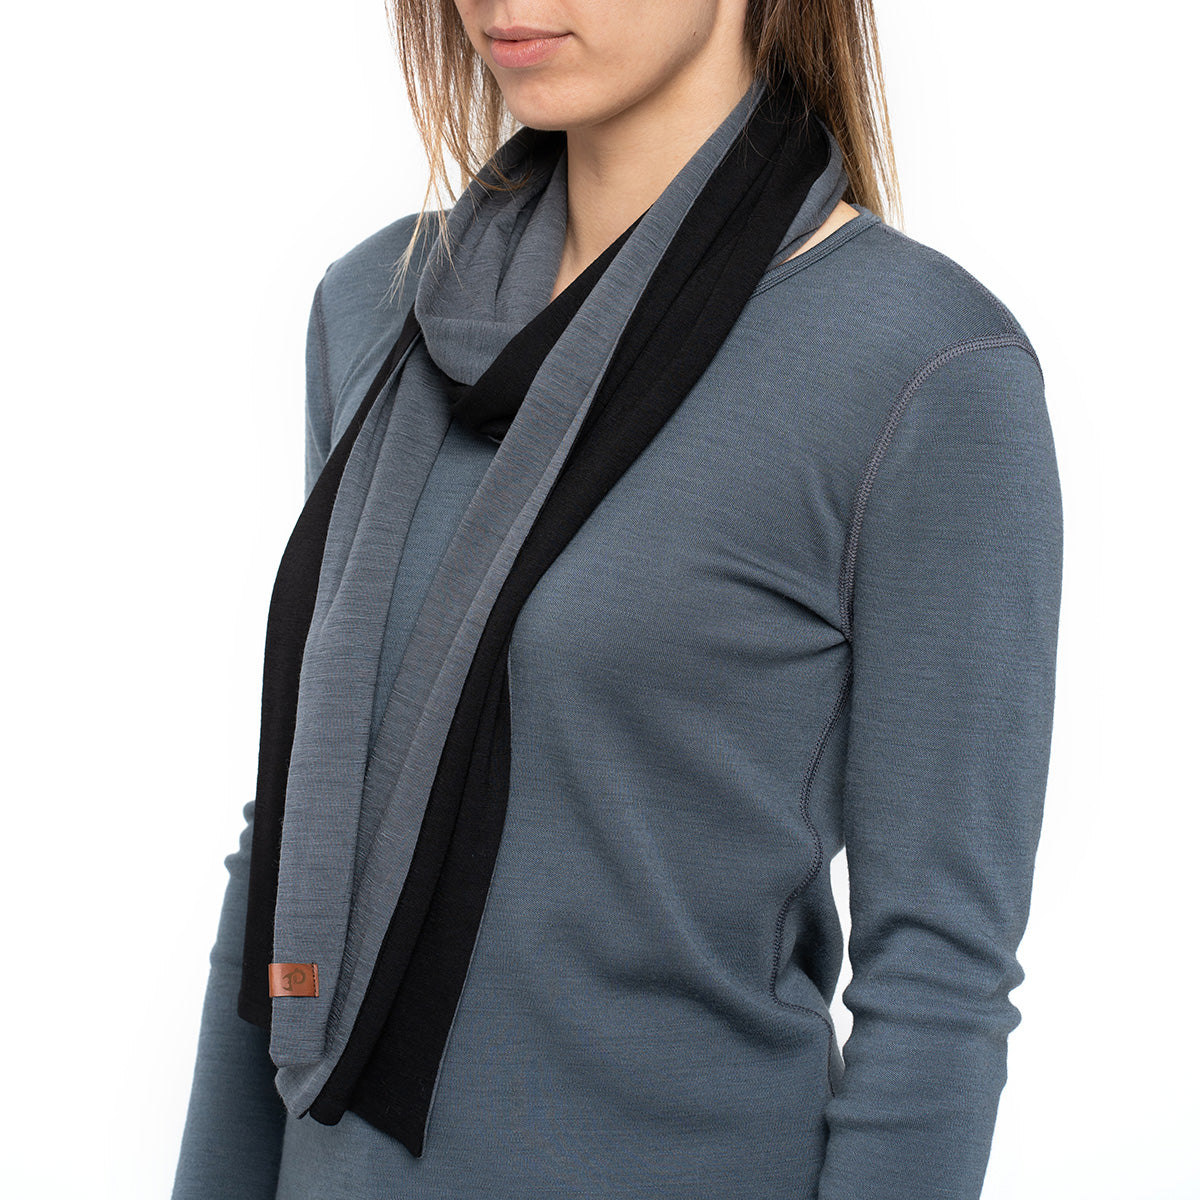 menique Women's Merino Scarf Black/Perfect Grey Color